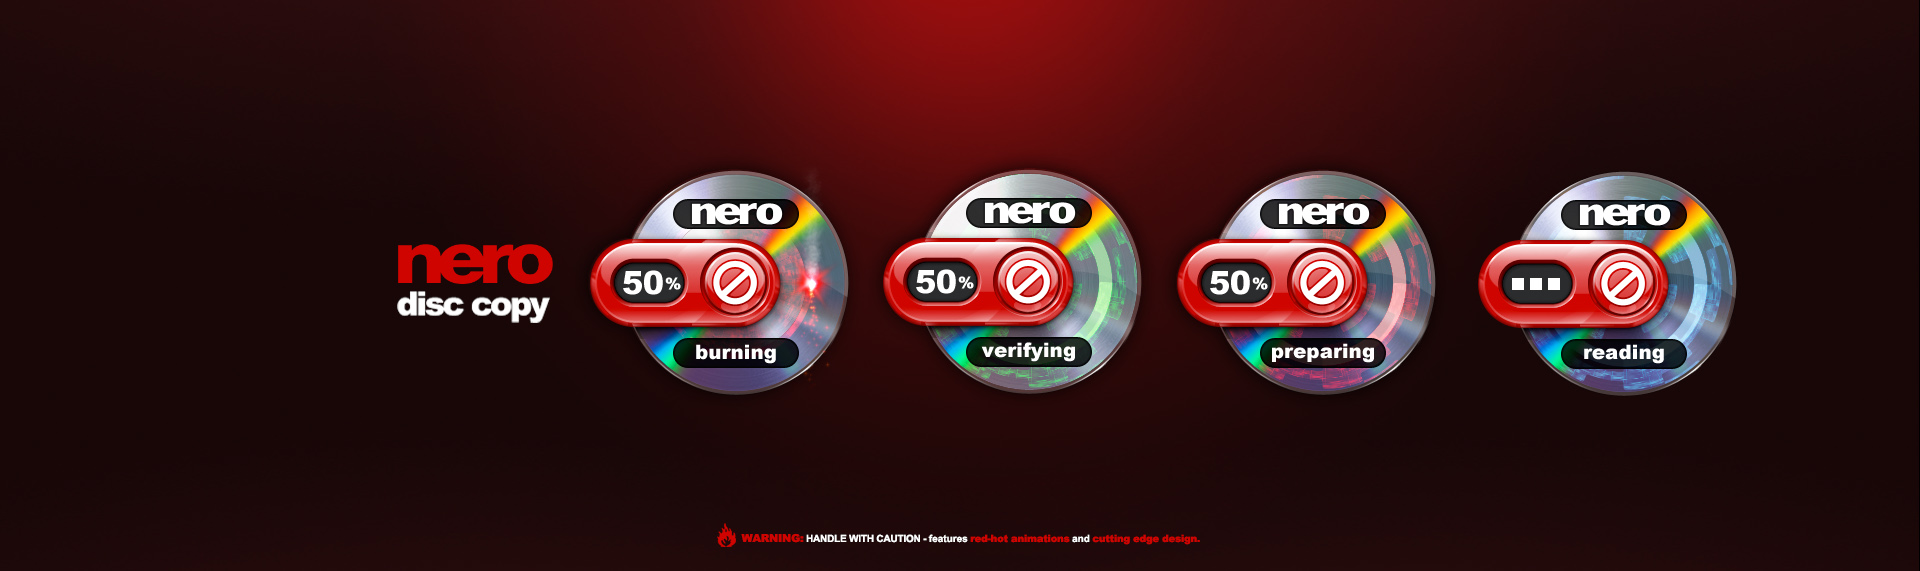 Nero Disc Copy  Client: Nero  Nero once again contracted our little band of pixel ninjas, to create their highly animated, Windows Vista Sidebar Gadget - Nero Disc Copy. Nero Disc Copy Gadget copies CDs, DVDs, Blu-ray Discs and HD DVDs. It also burns ISO, NRG, and IMG files via drag-and-drop. While it has a super small desktop footprint, it is large in functionality. Stylized with a mock red acrylic body, the animation sequences feature animated data blocks while the disc spins.